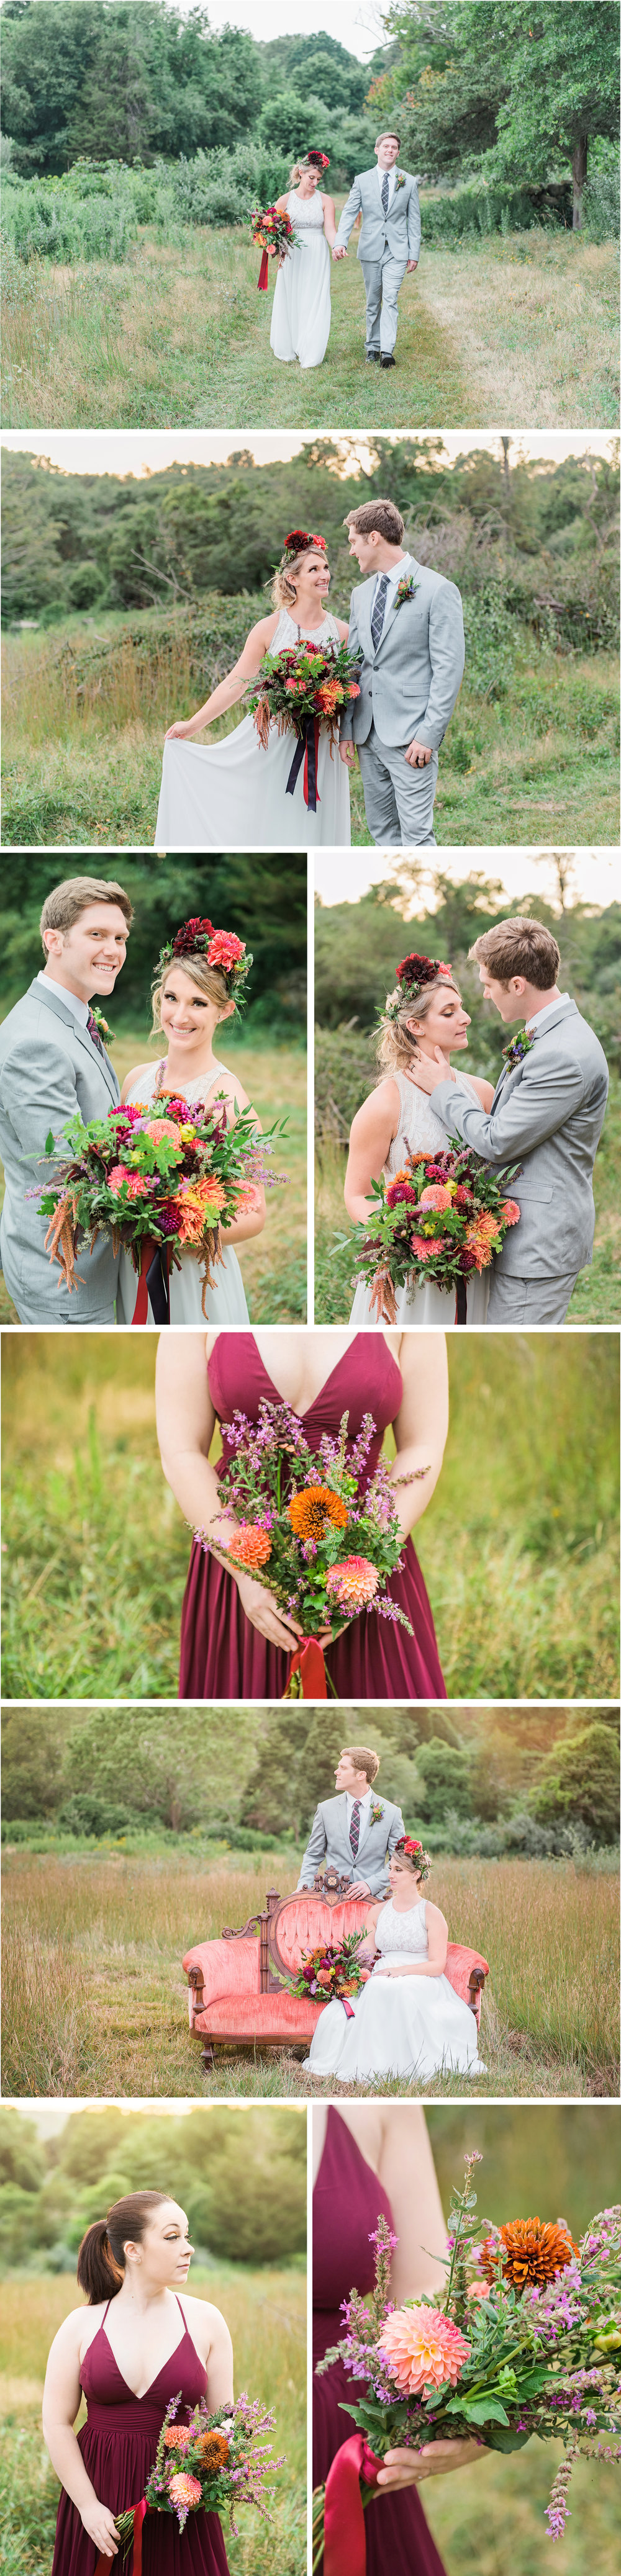 Connecticut Boho Bridal Wedding S and P 2